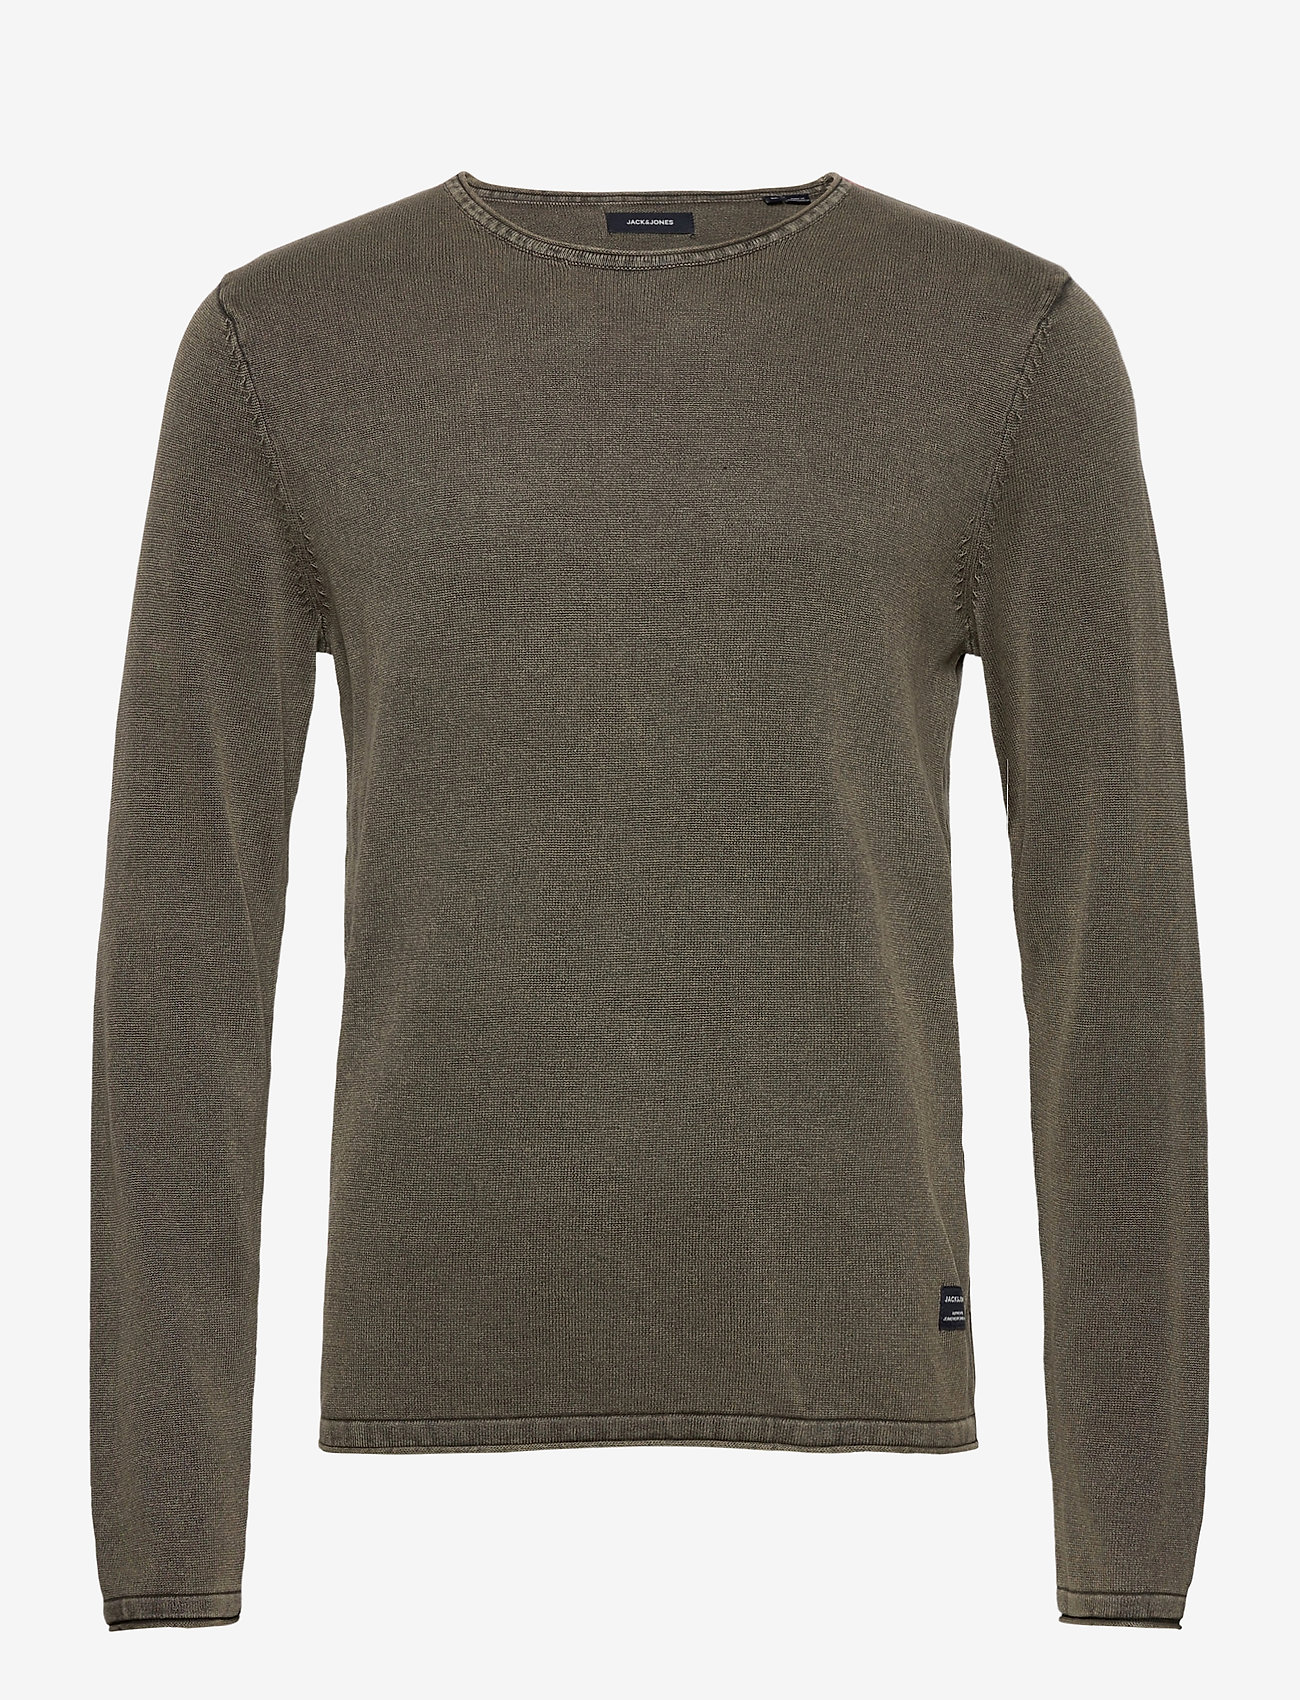 Jack & Jones - JJELEO KNIT CREW NECK NOOS - tricots basiques - dusty olive - 0